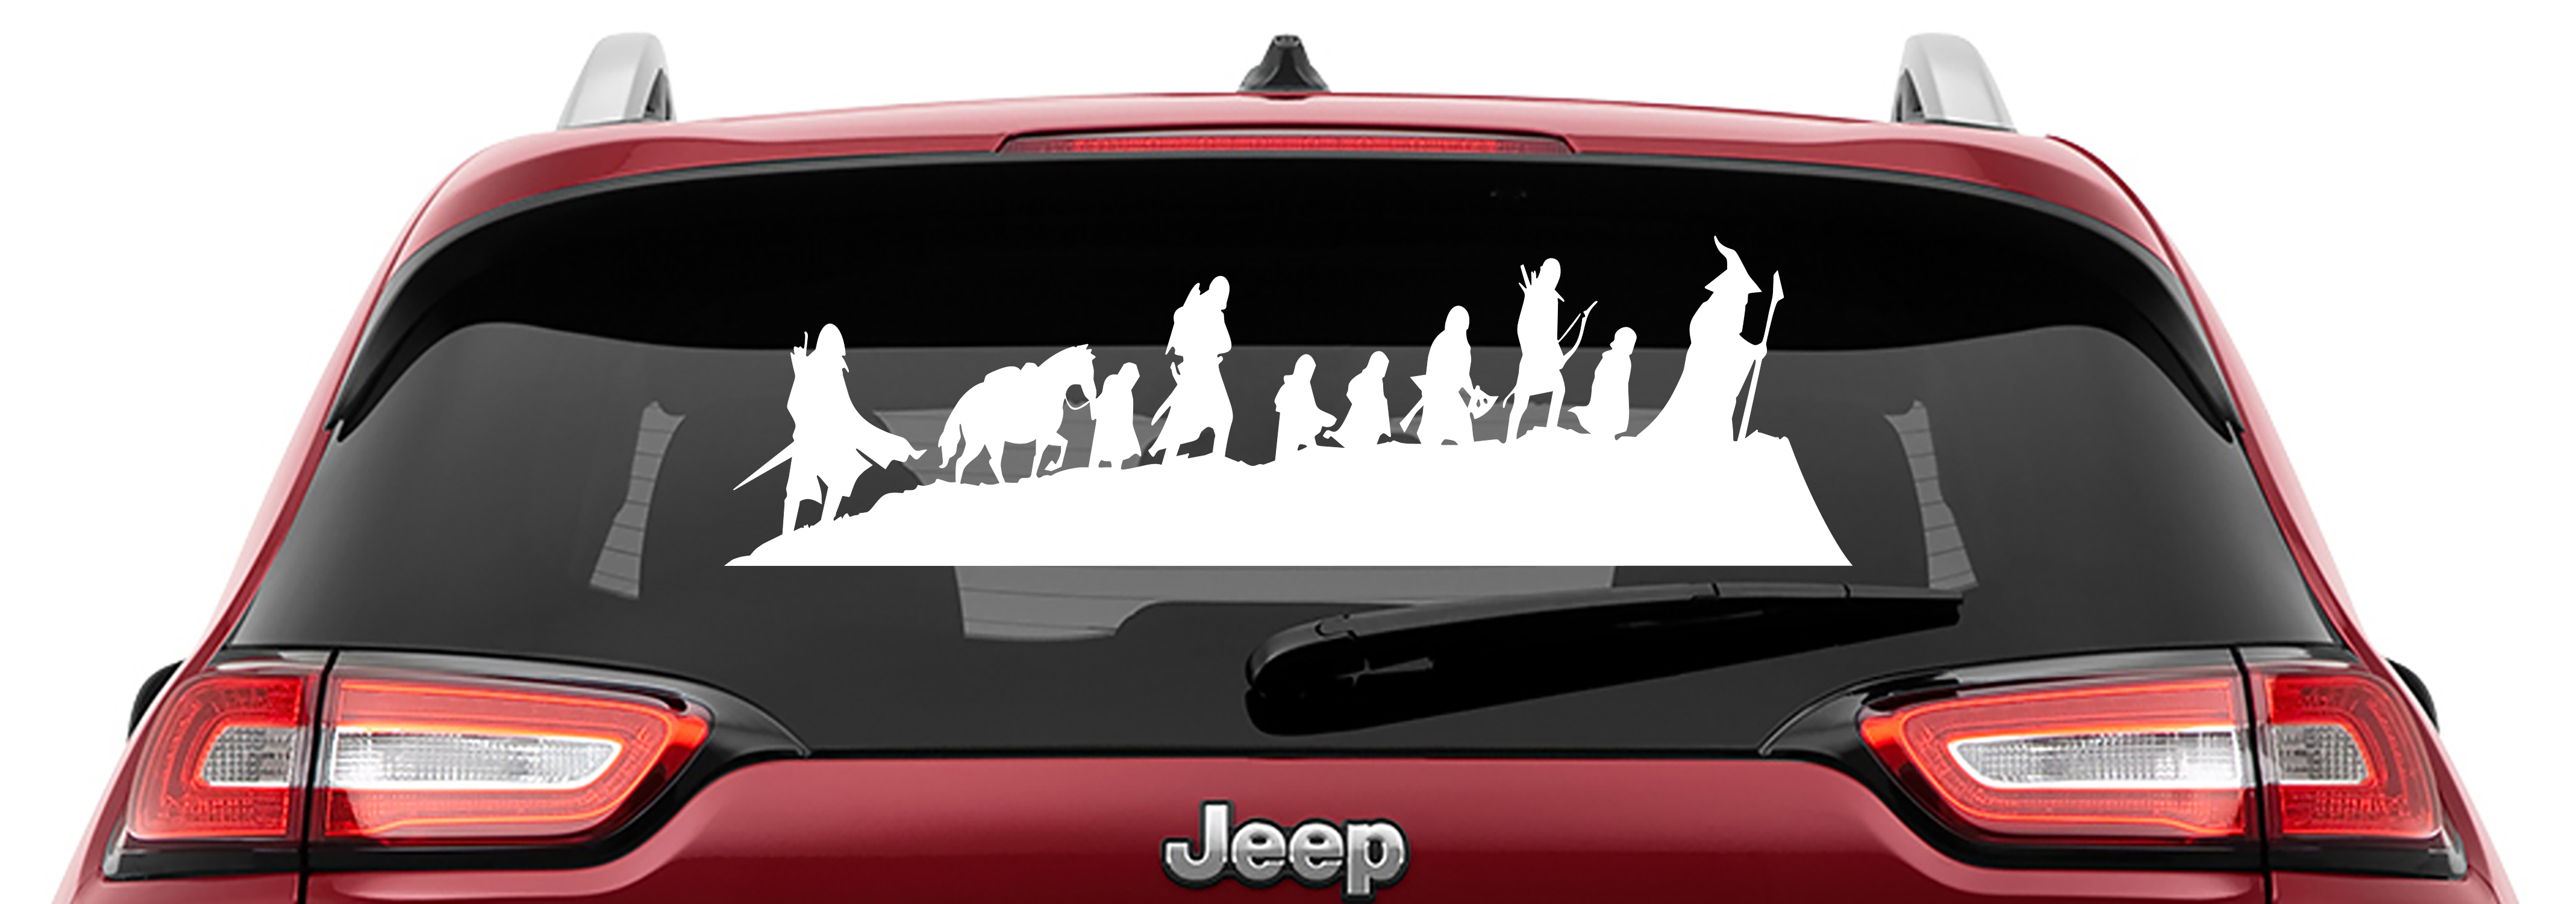 Lord Of The Rings The Fellowship of the Ring Caravan Vinyl Decal